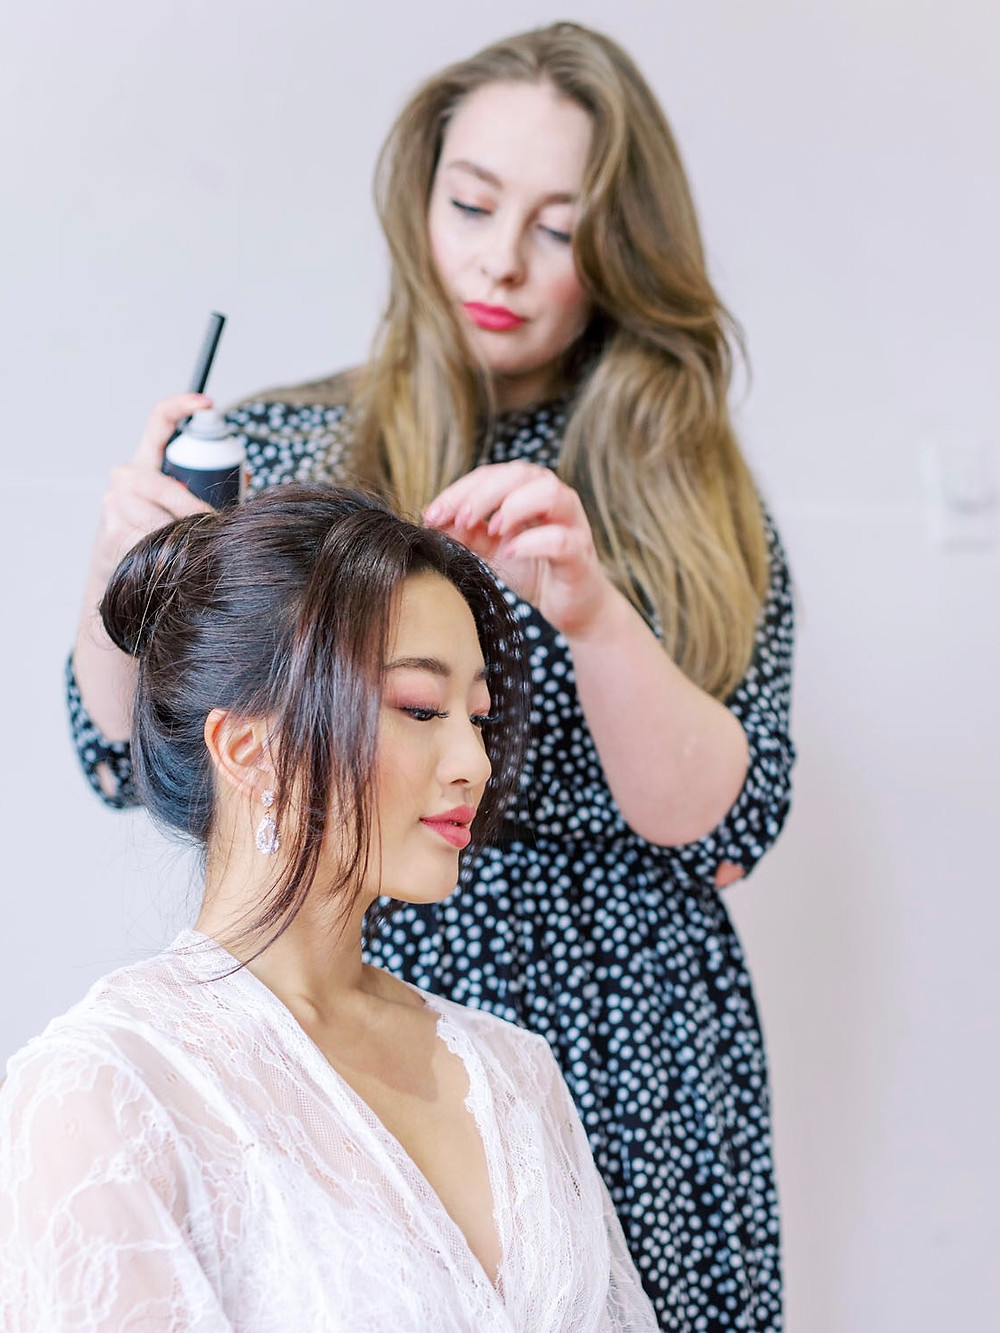 Alisha Hopps is working with her model on a bridal trial